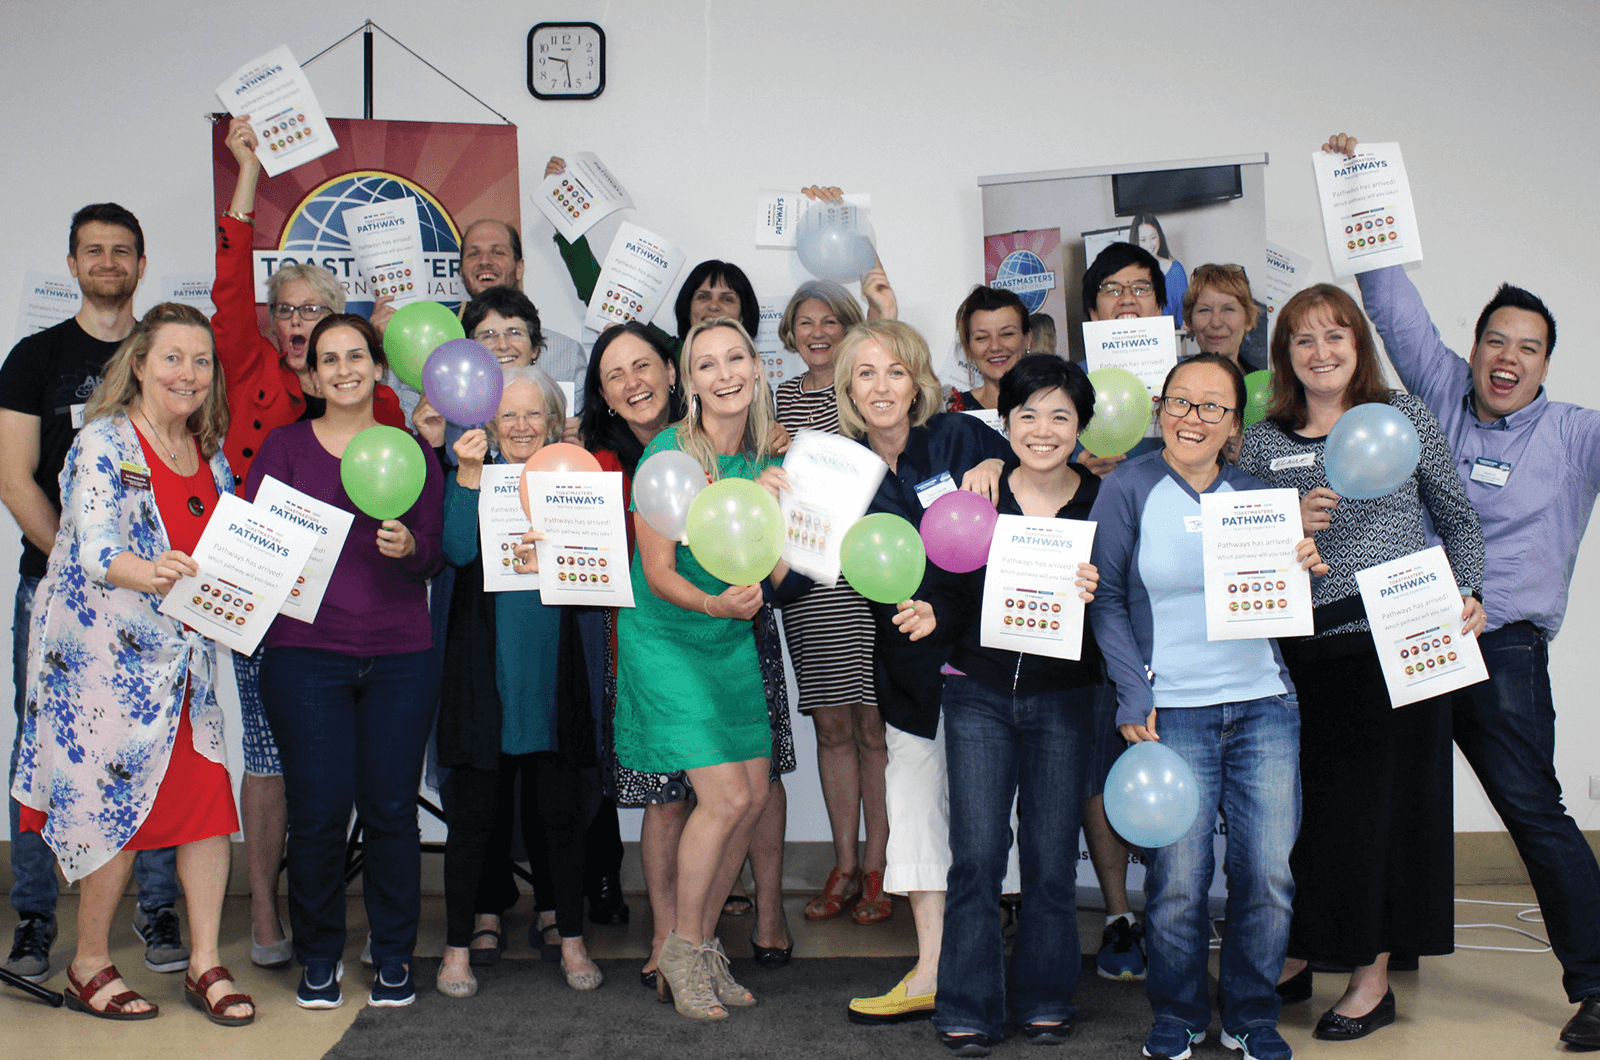 Group of Toastmasters members holding balloons and signs